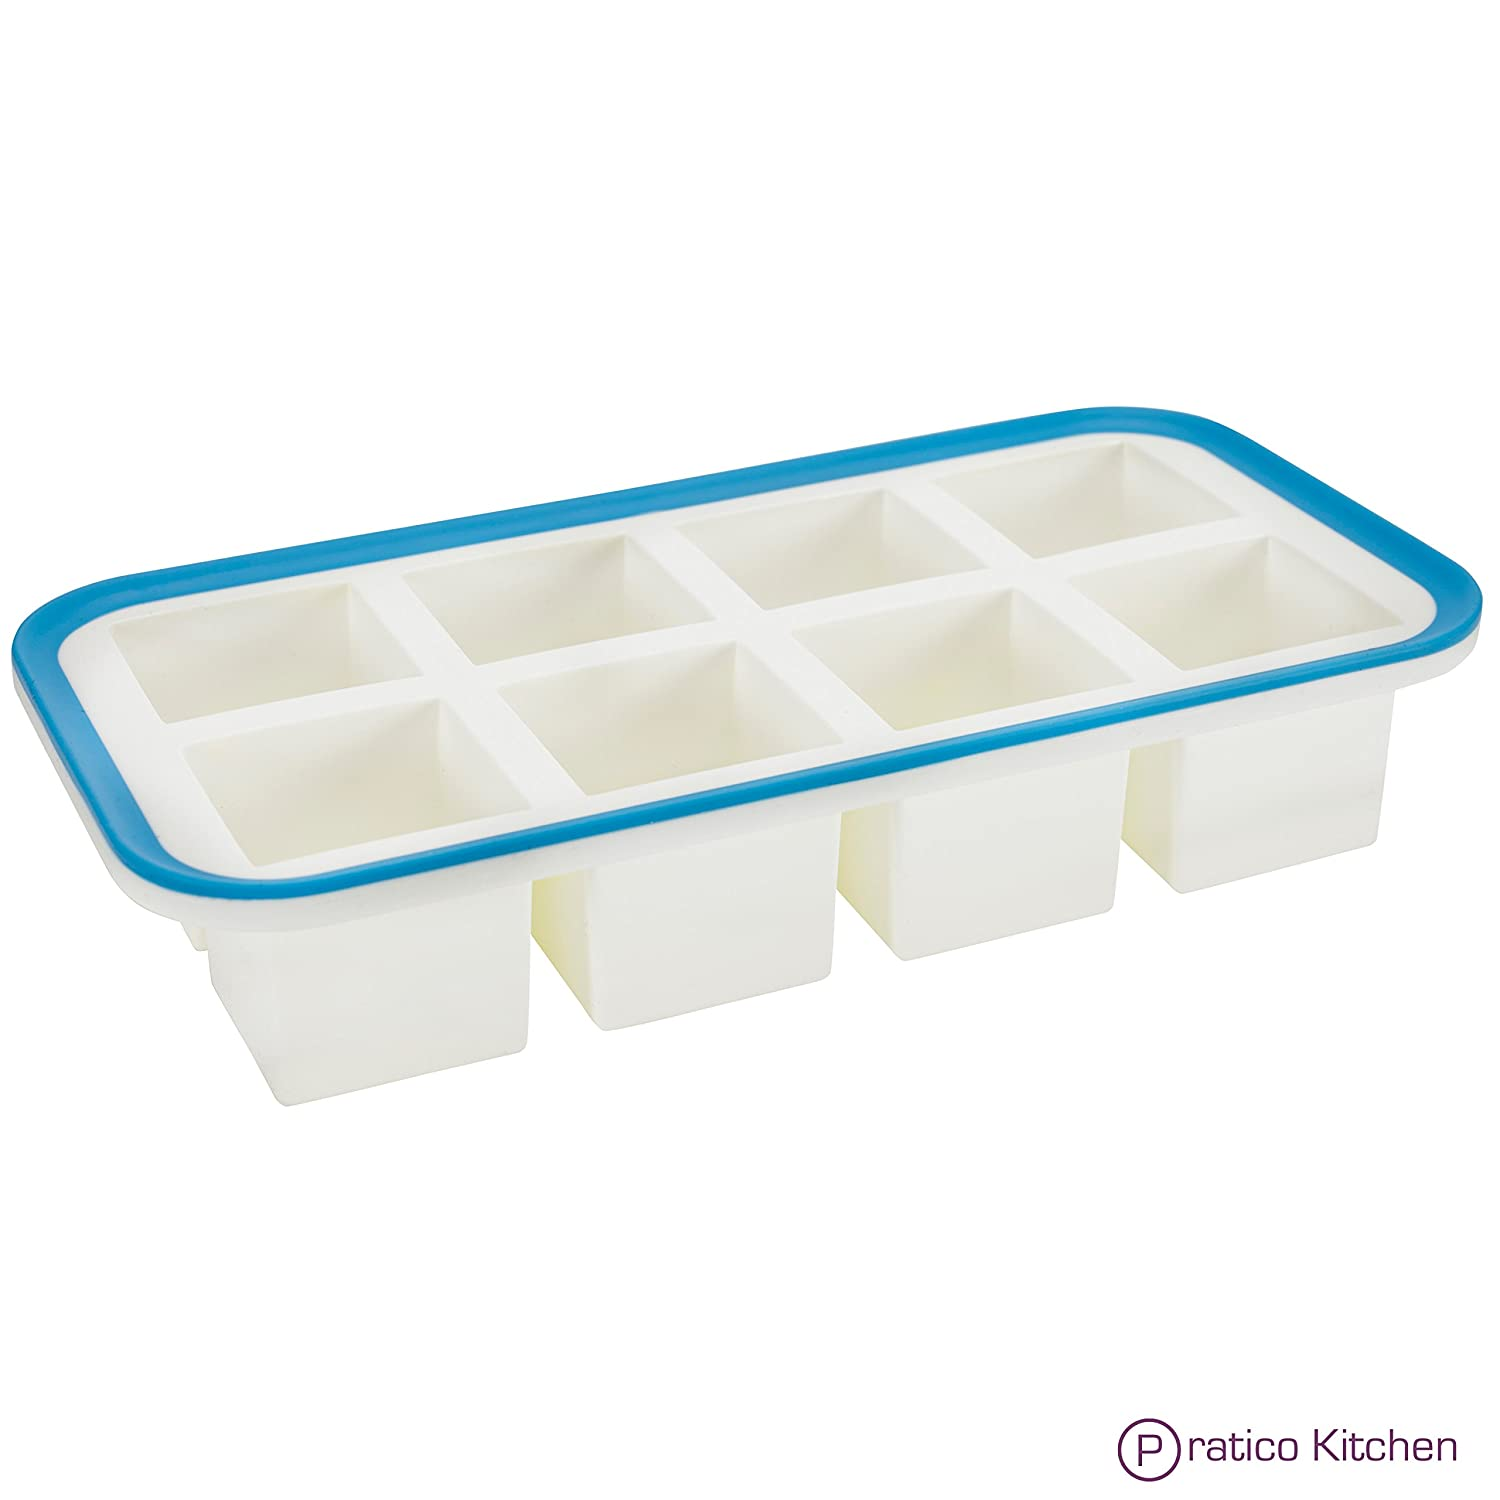 Pratico Kitchen 2 Silicone Ice Cube Trays Review